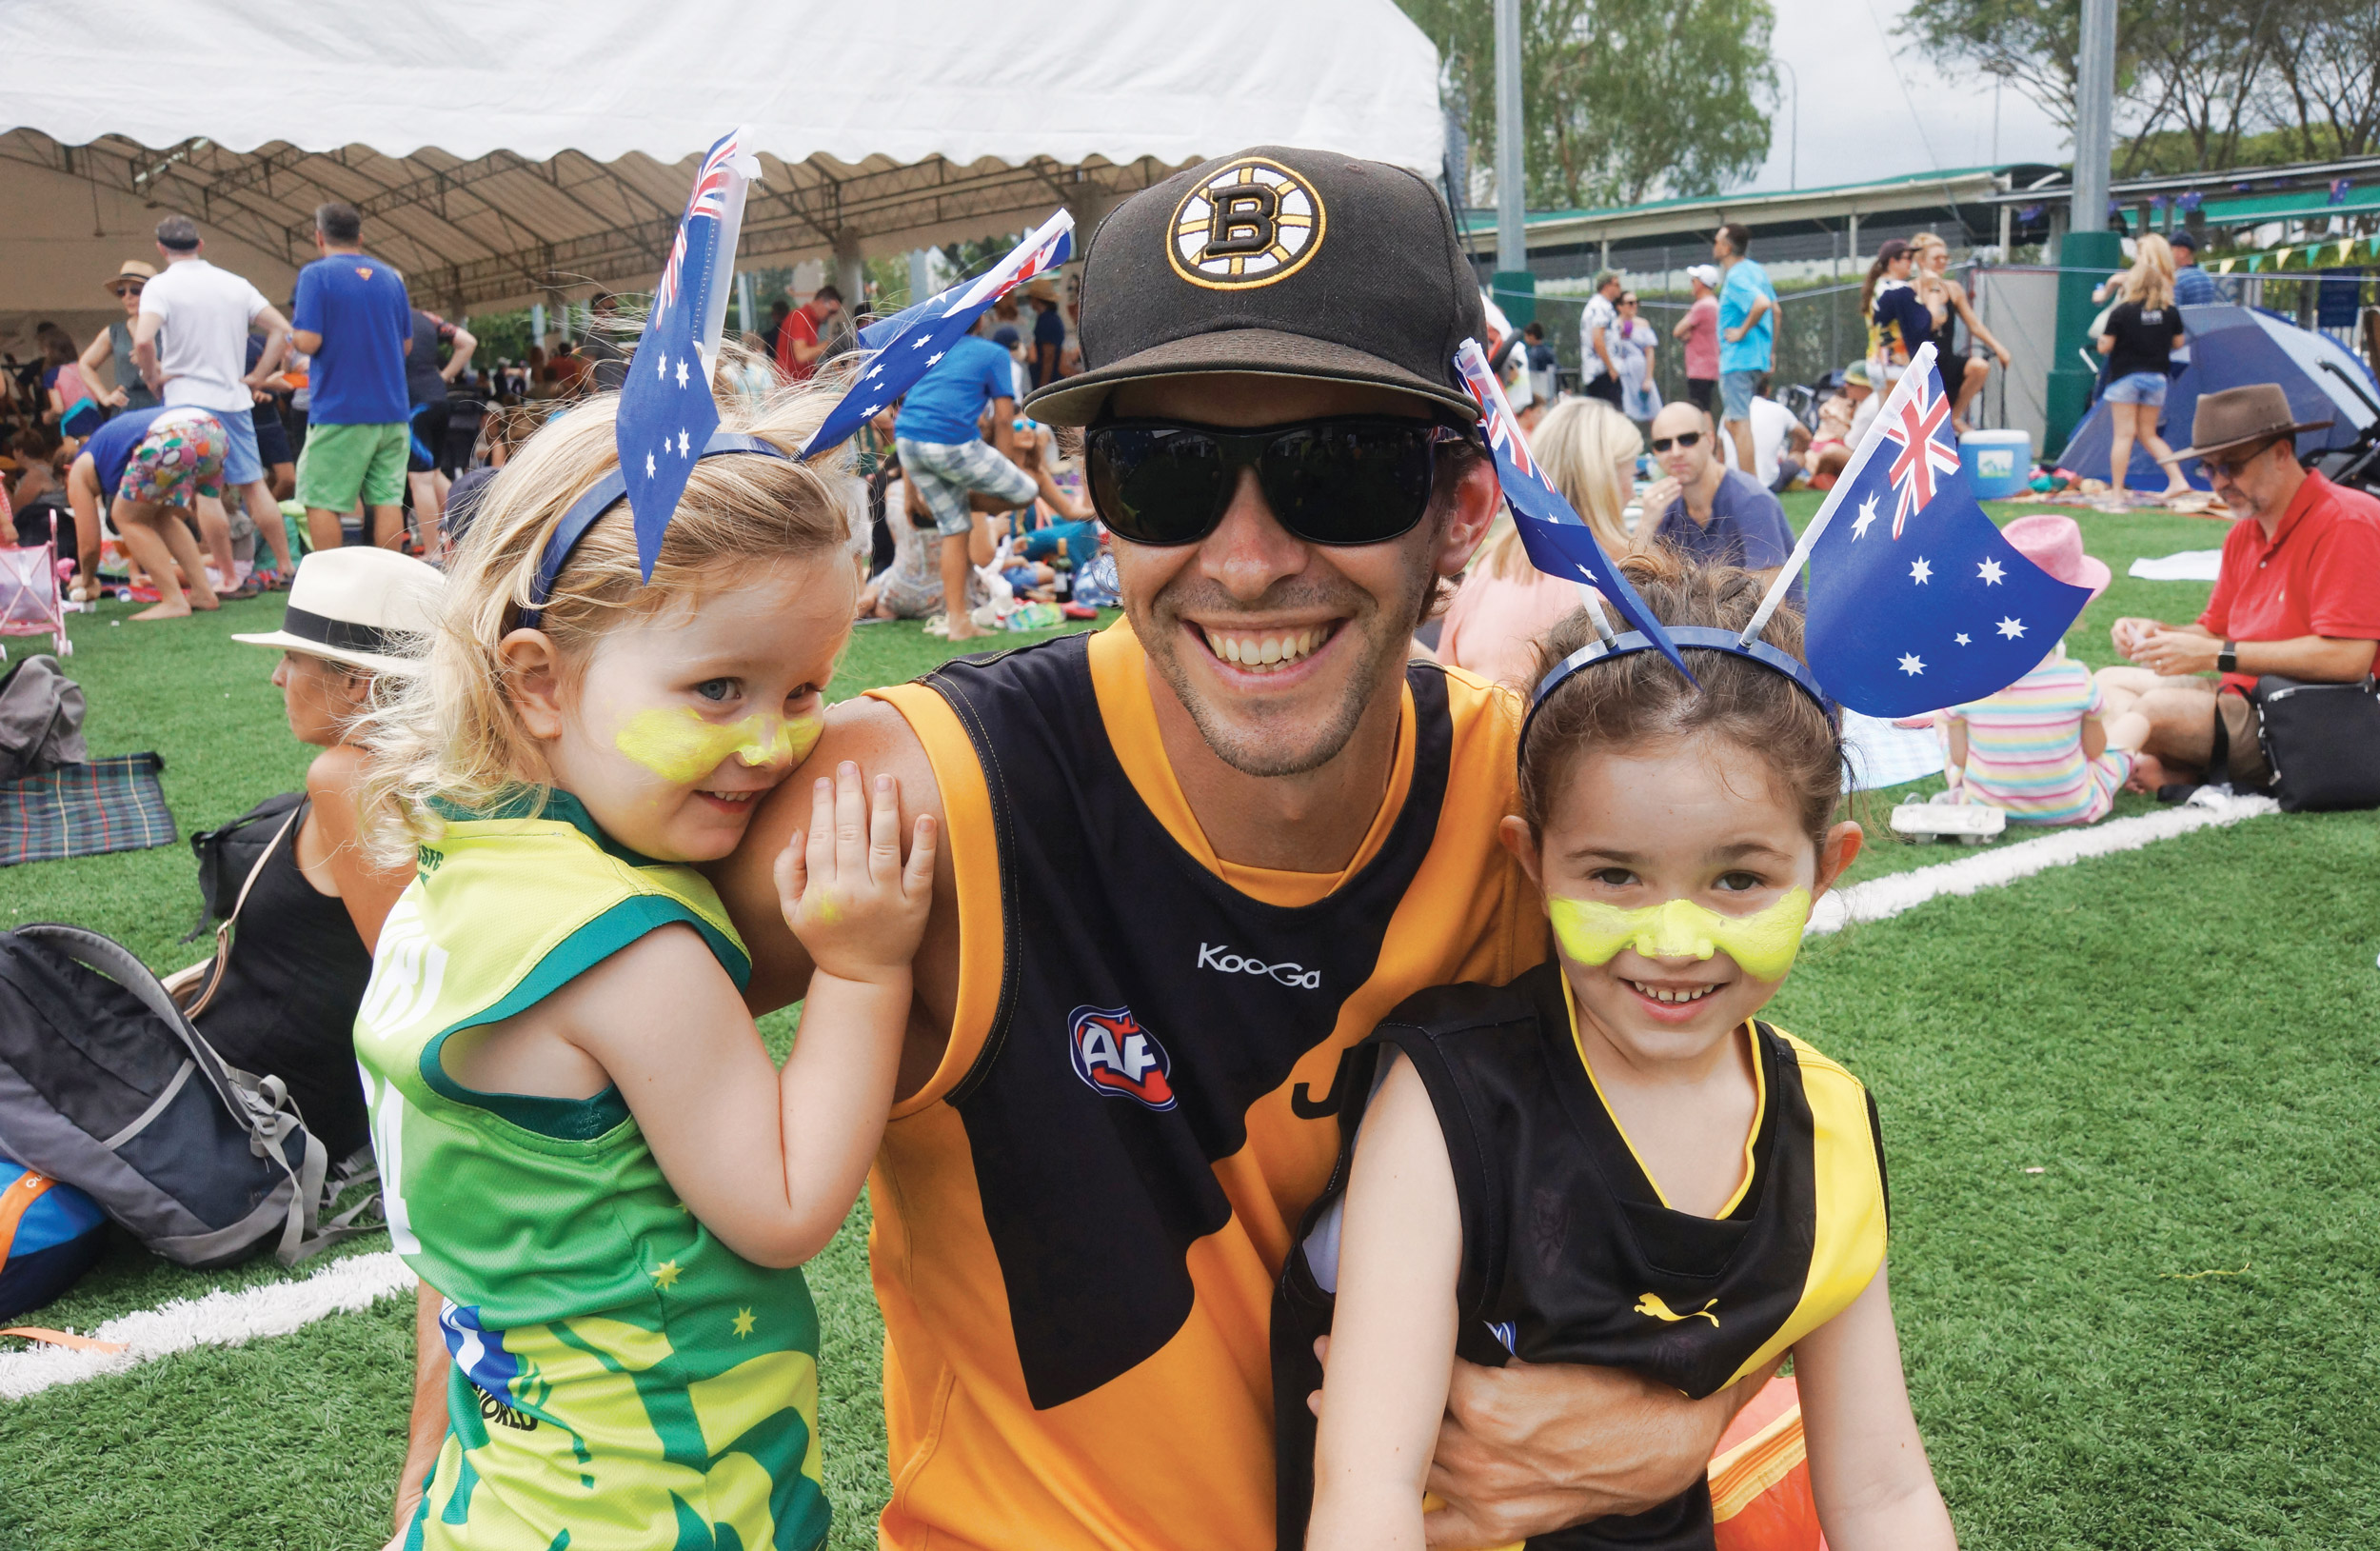 Family at outdoor event, Australia Day Event